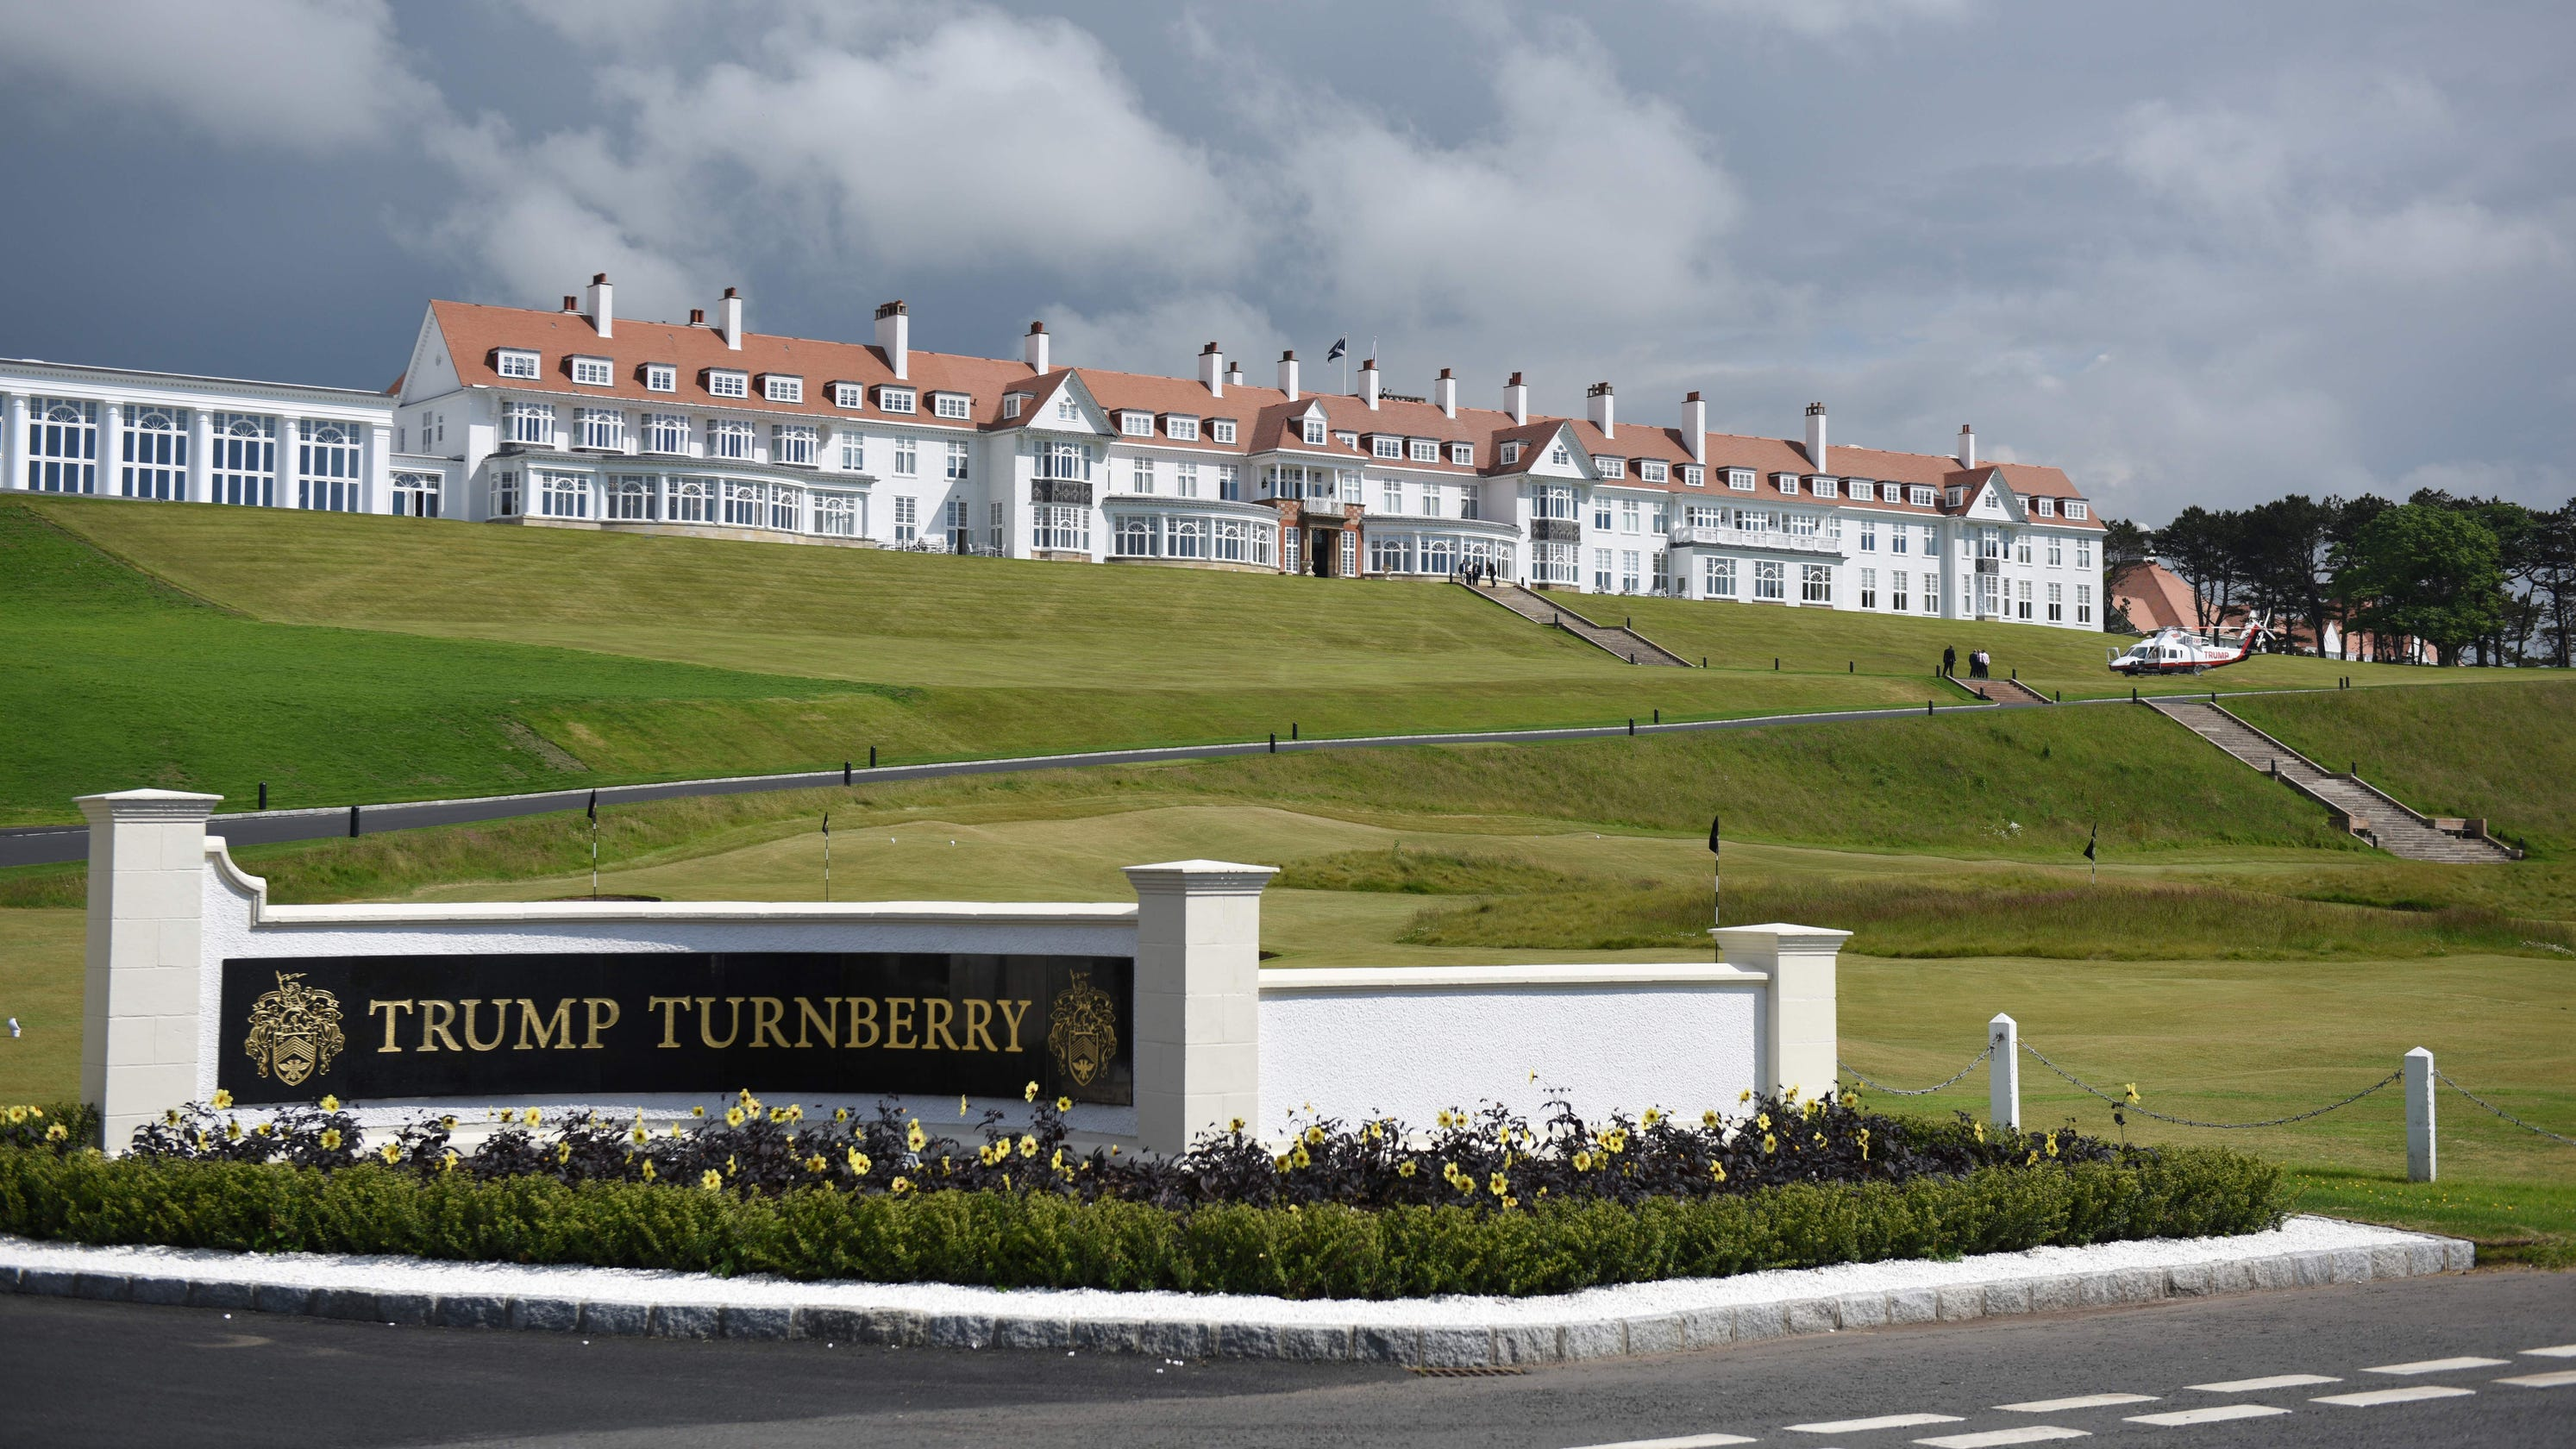 'Conflict of interest concerns': House investigating increased military spending at Trump's Turnberry resort